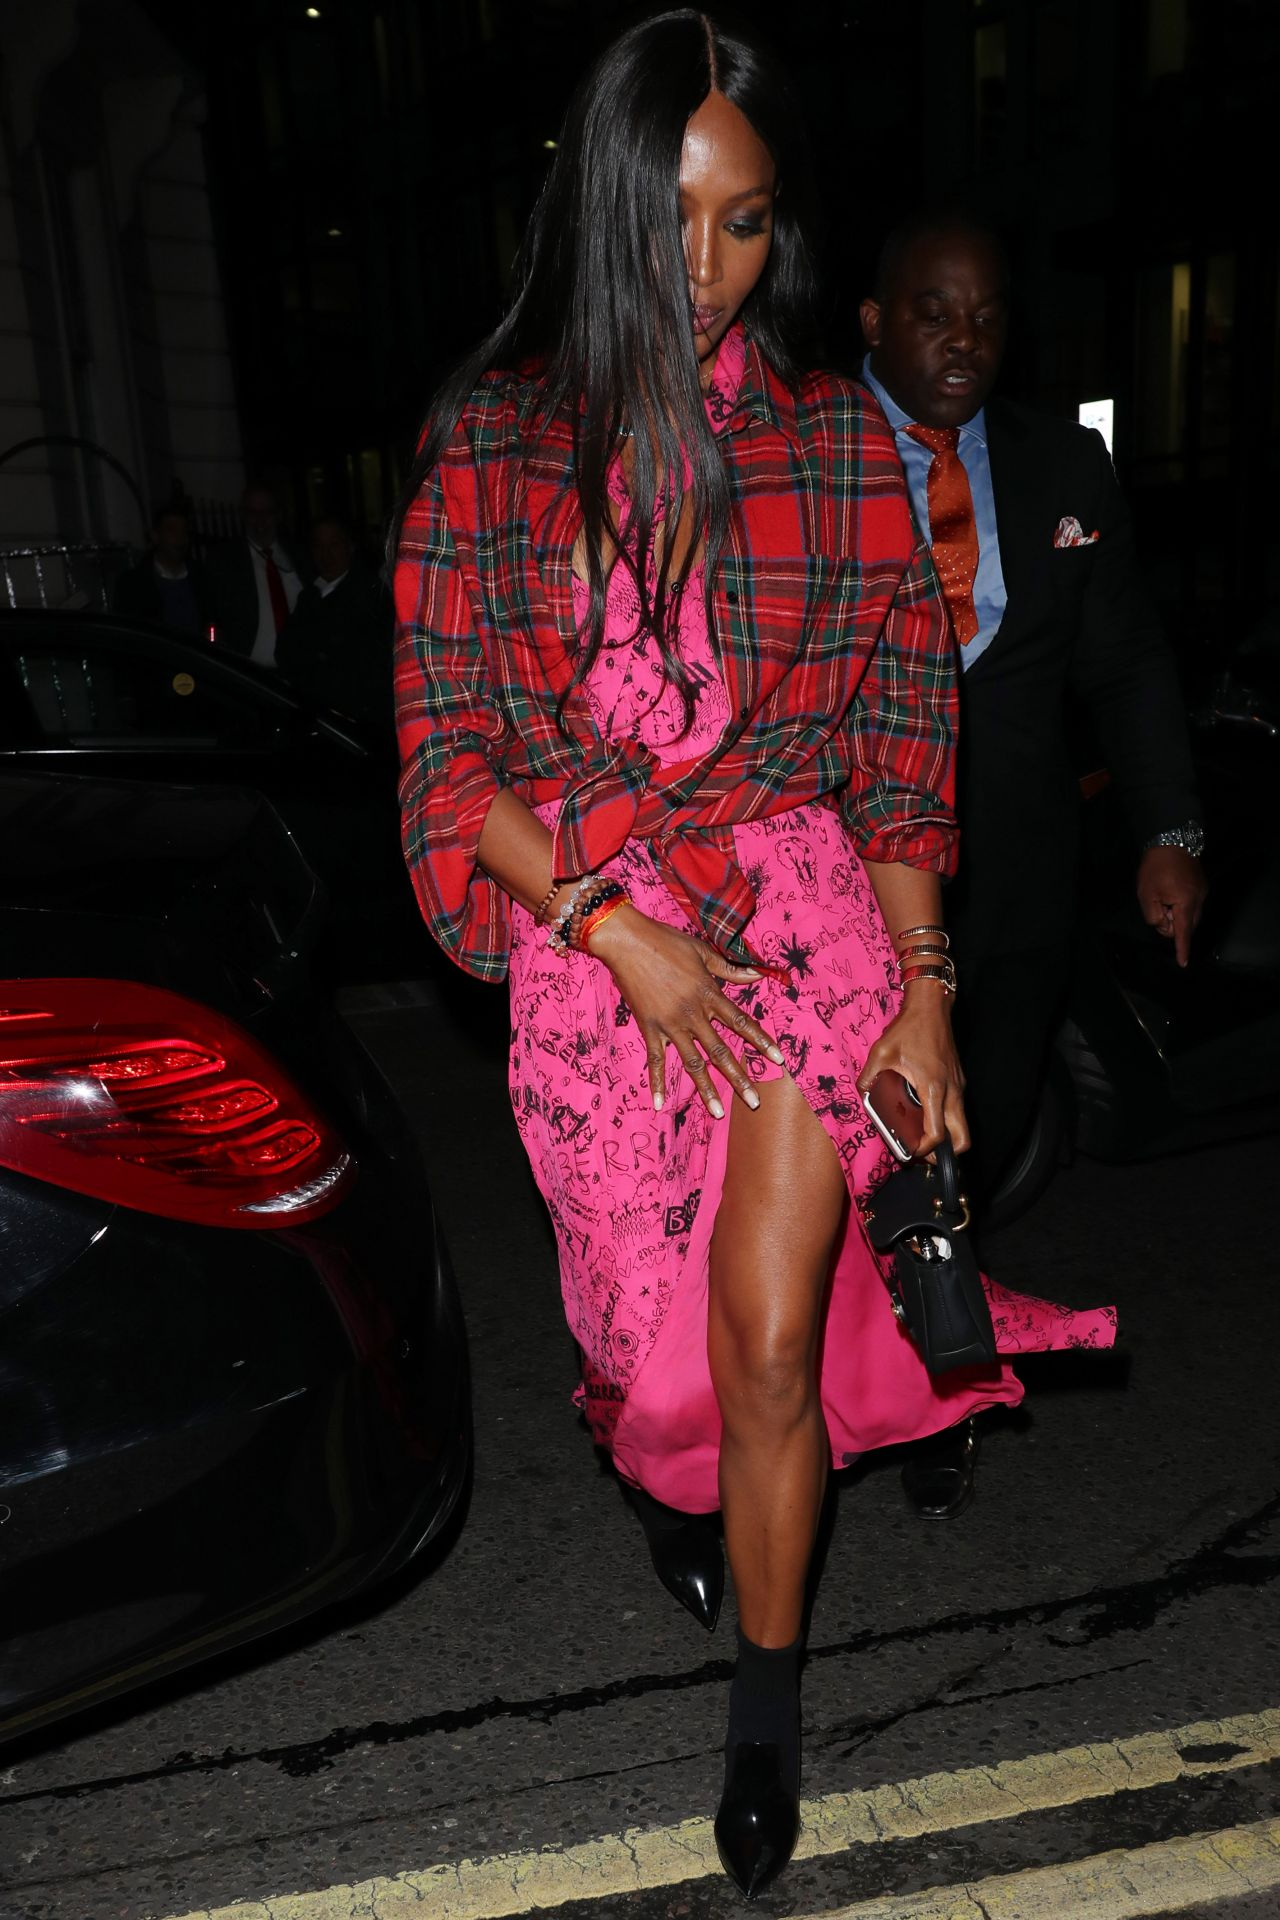 naomi-campbell-burberry-show-in-london-09-16-2017-3